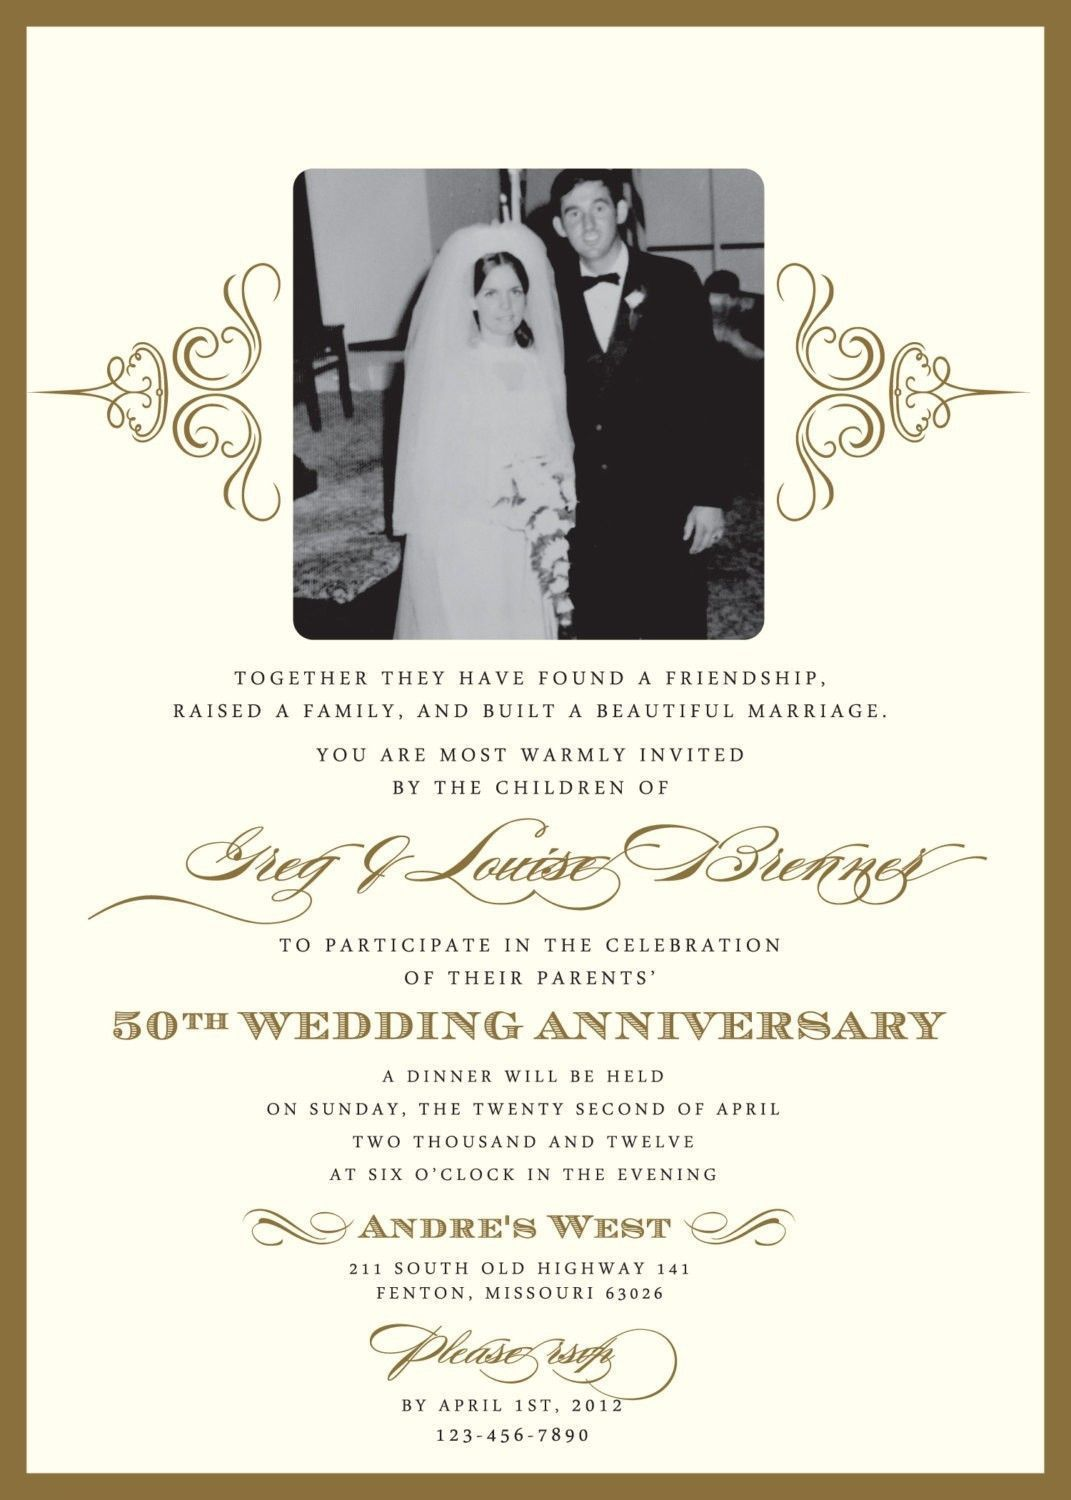 The Enchanting 006 50th Anniversary Invitation Template Ideas In 2020 50th Anniversary Invitations 50th Wedding Anniversary Invitations 50th Wedding Anniversary Party